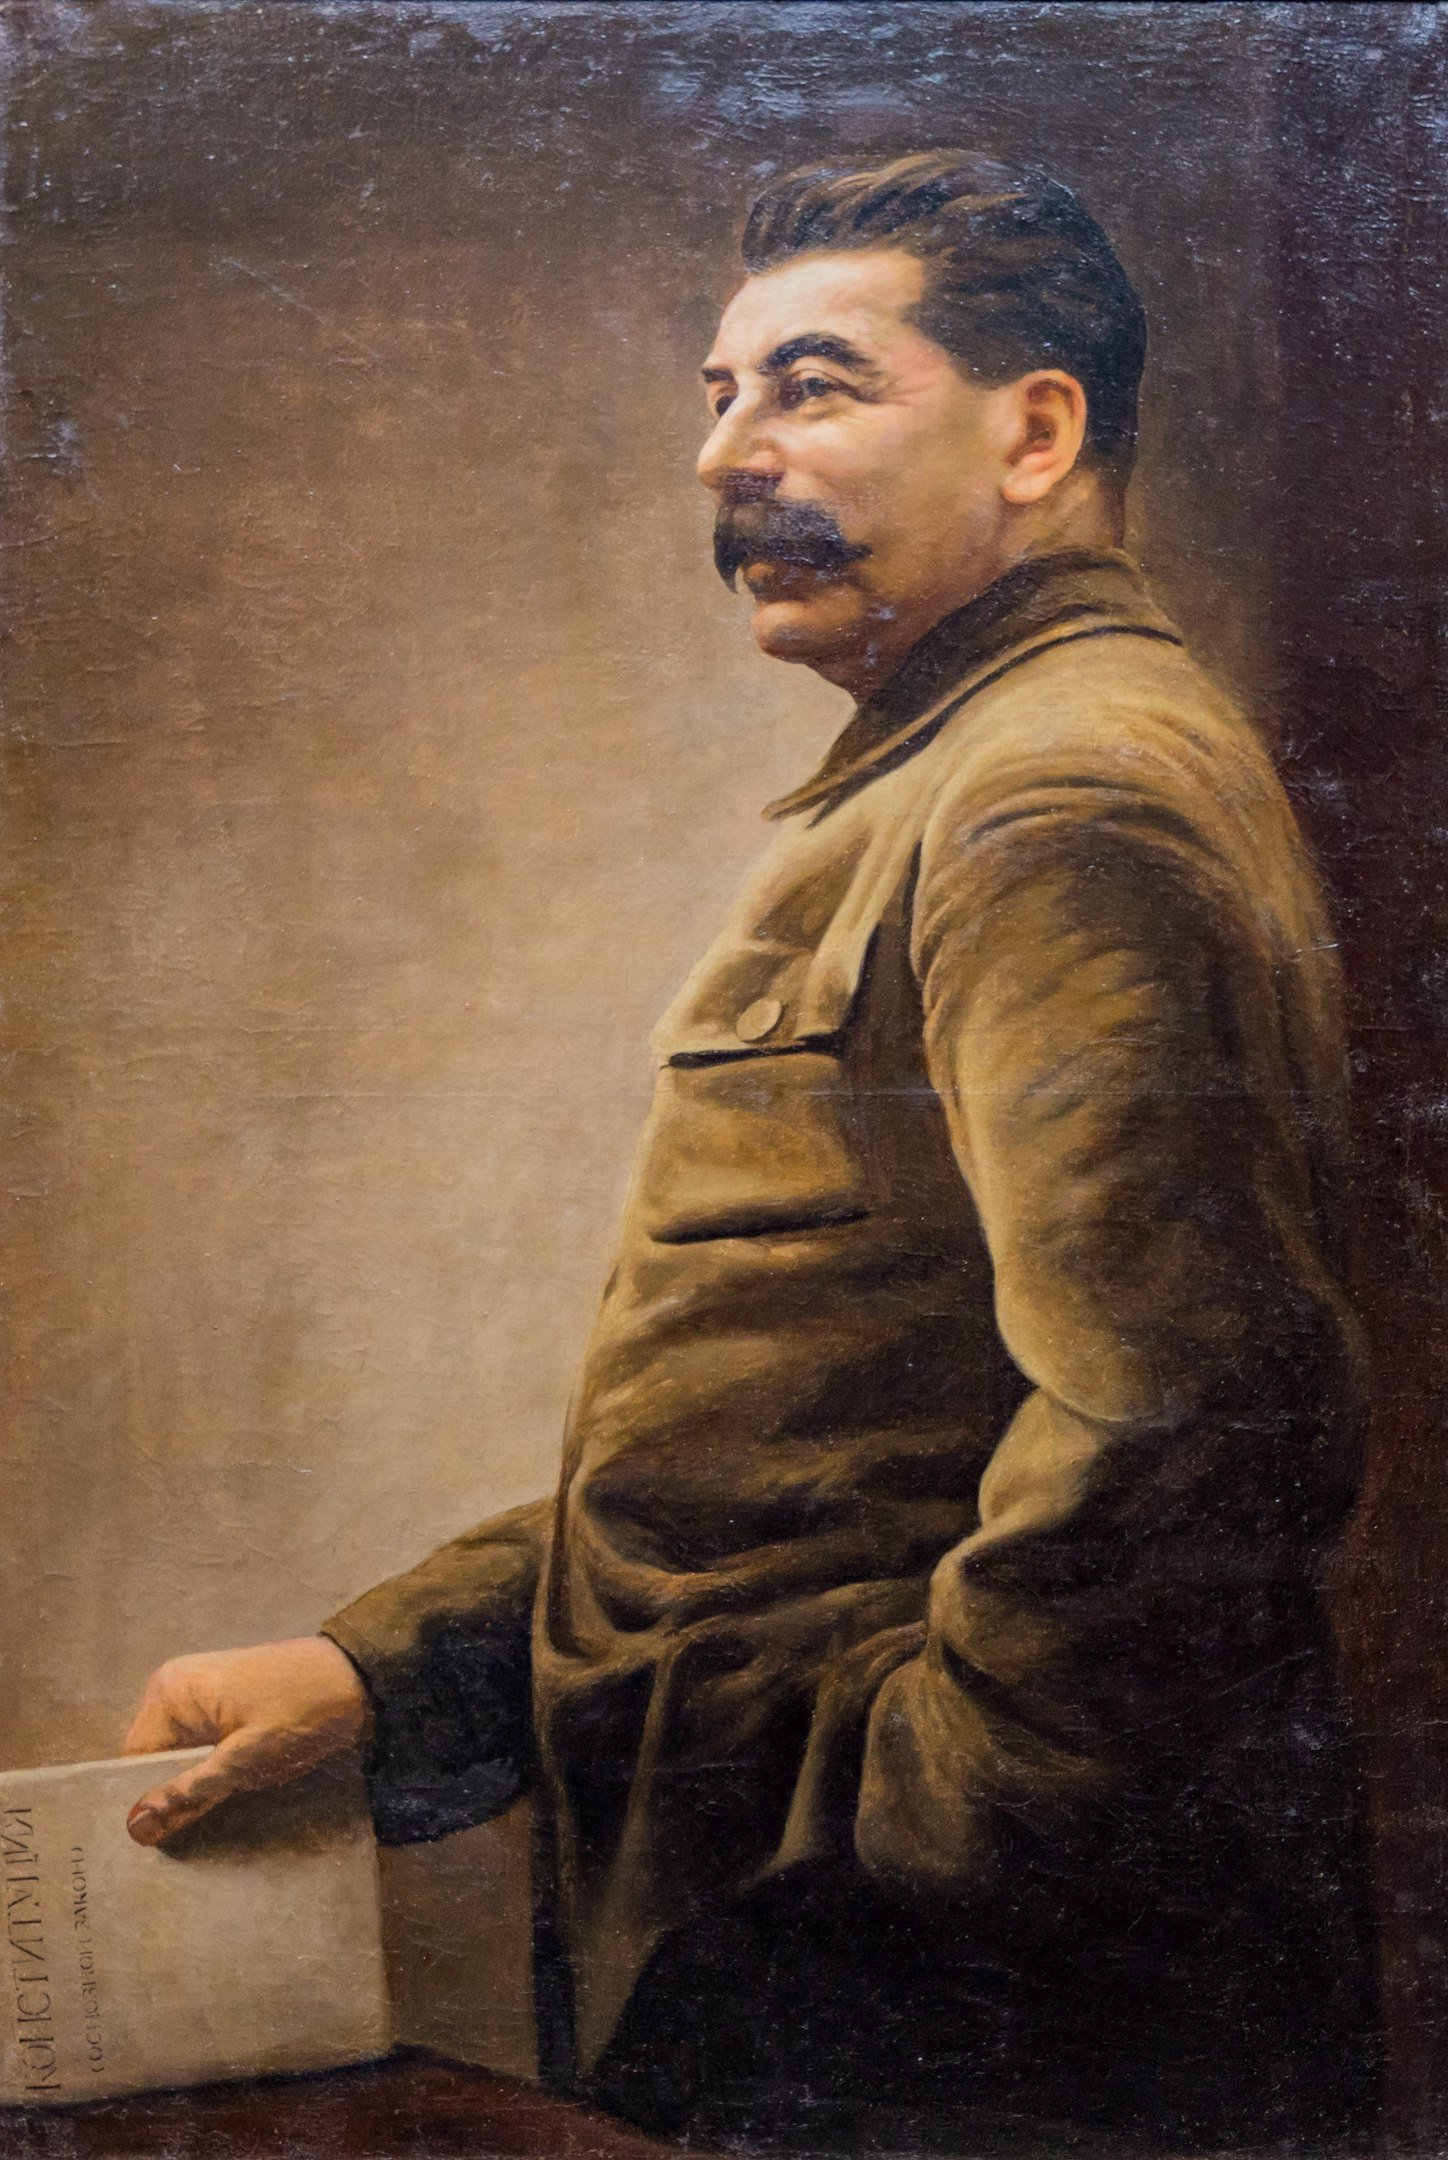 The anonymous portrait of Joseph Stalin. Image: VK / Moscow Victory Museum